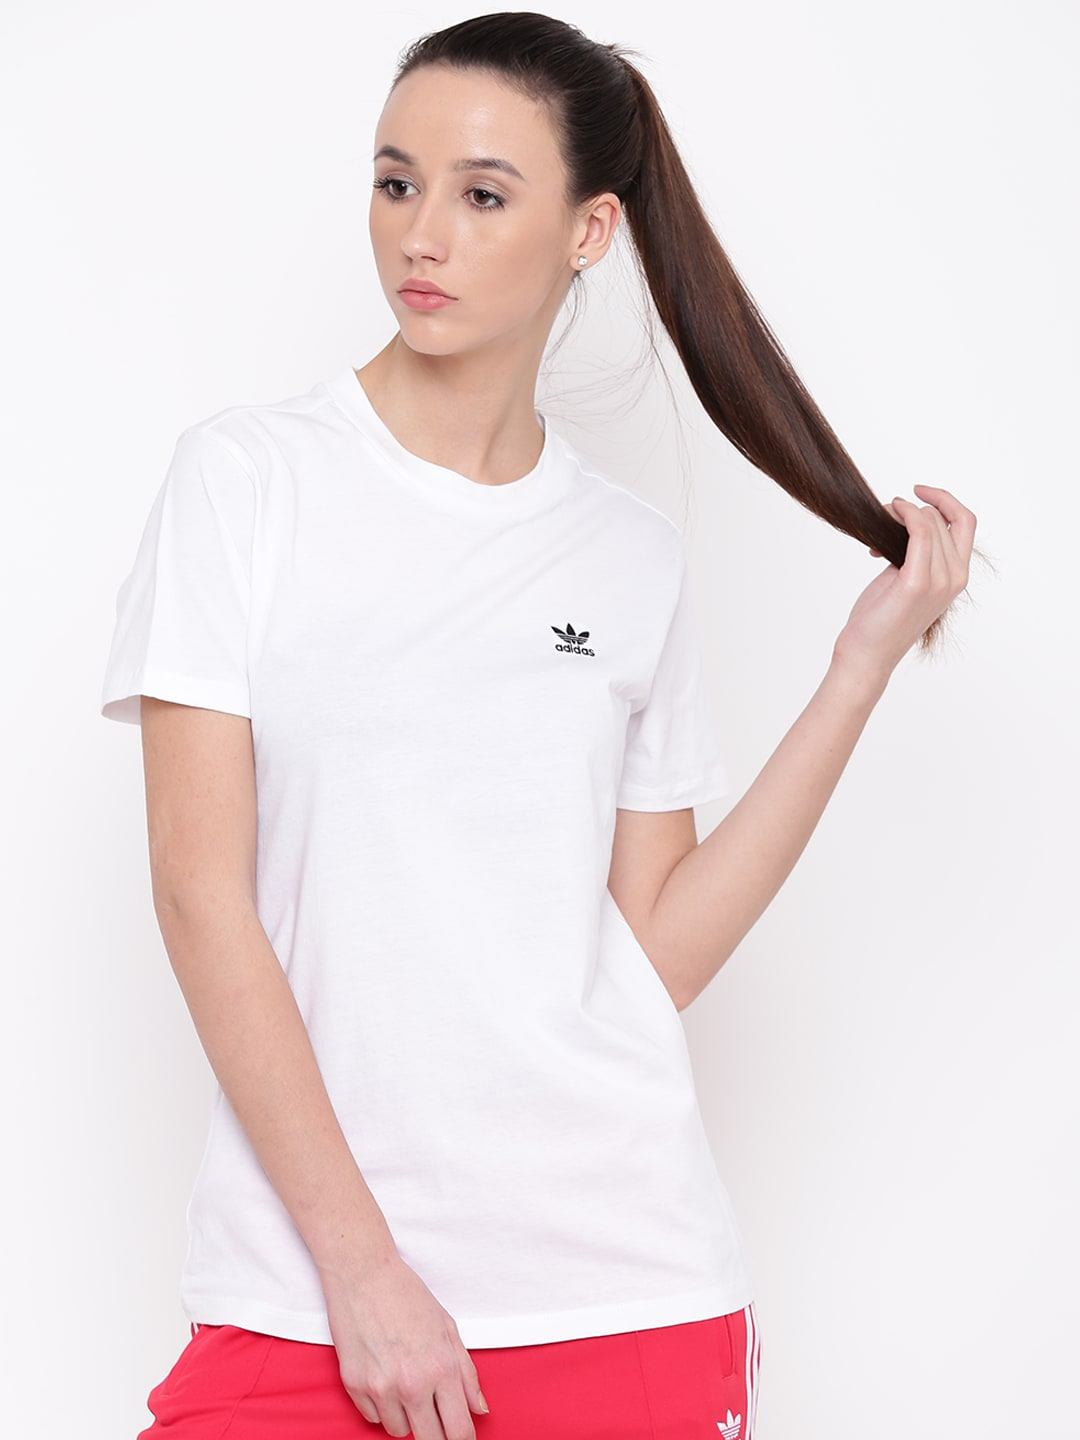 432235ae Buy ADIDAS Originals Women White BF Roll Up Solid Round Neck T Shirt ...